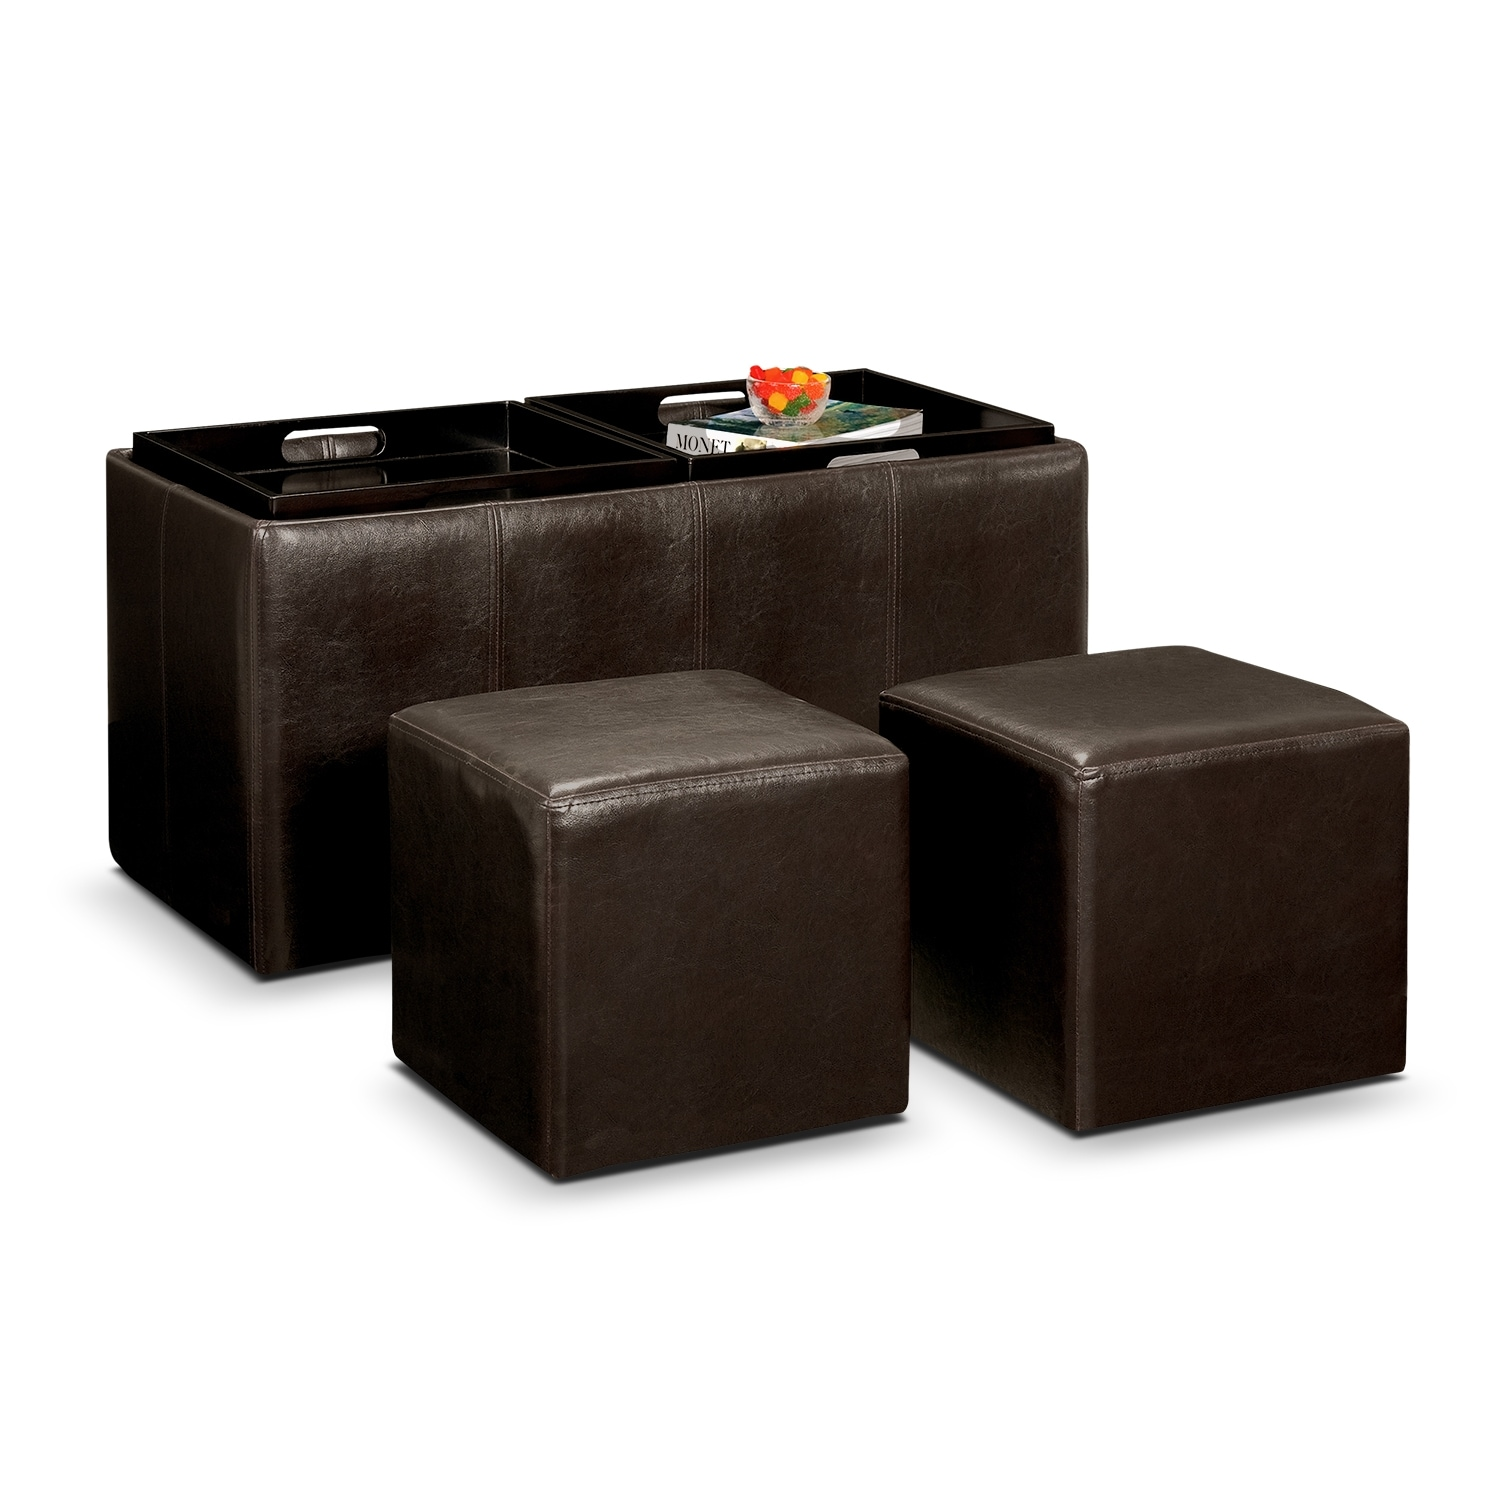 Tiffany 3 Pc. Storage Ottoman with Trays